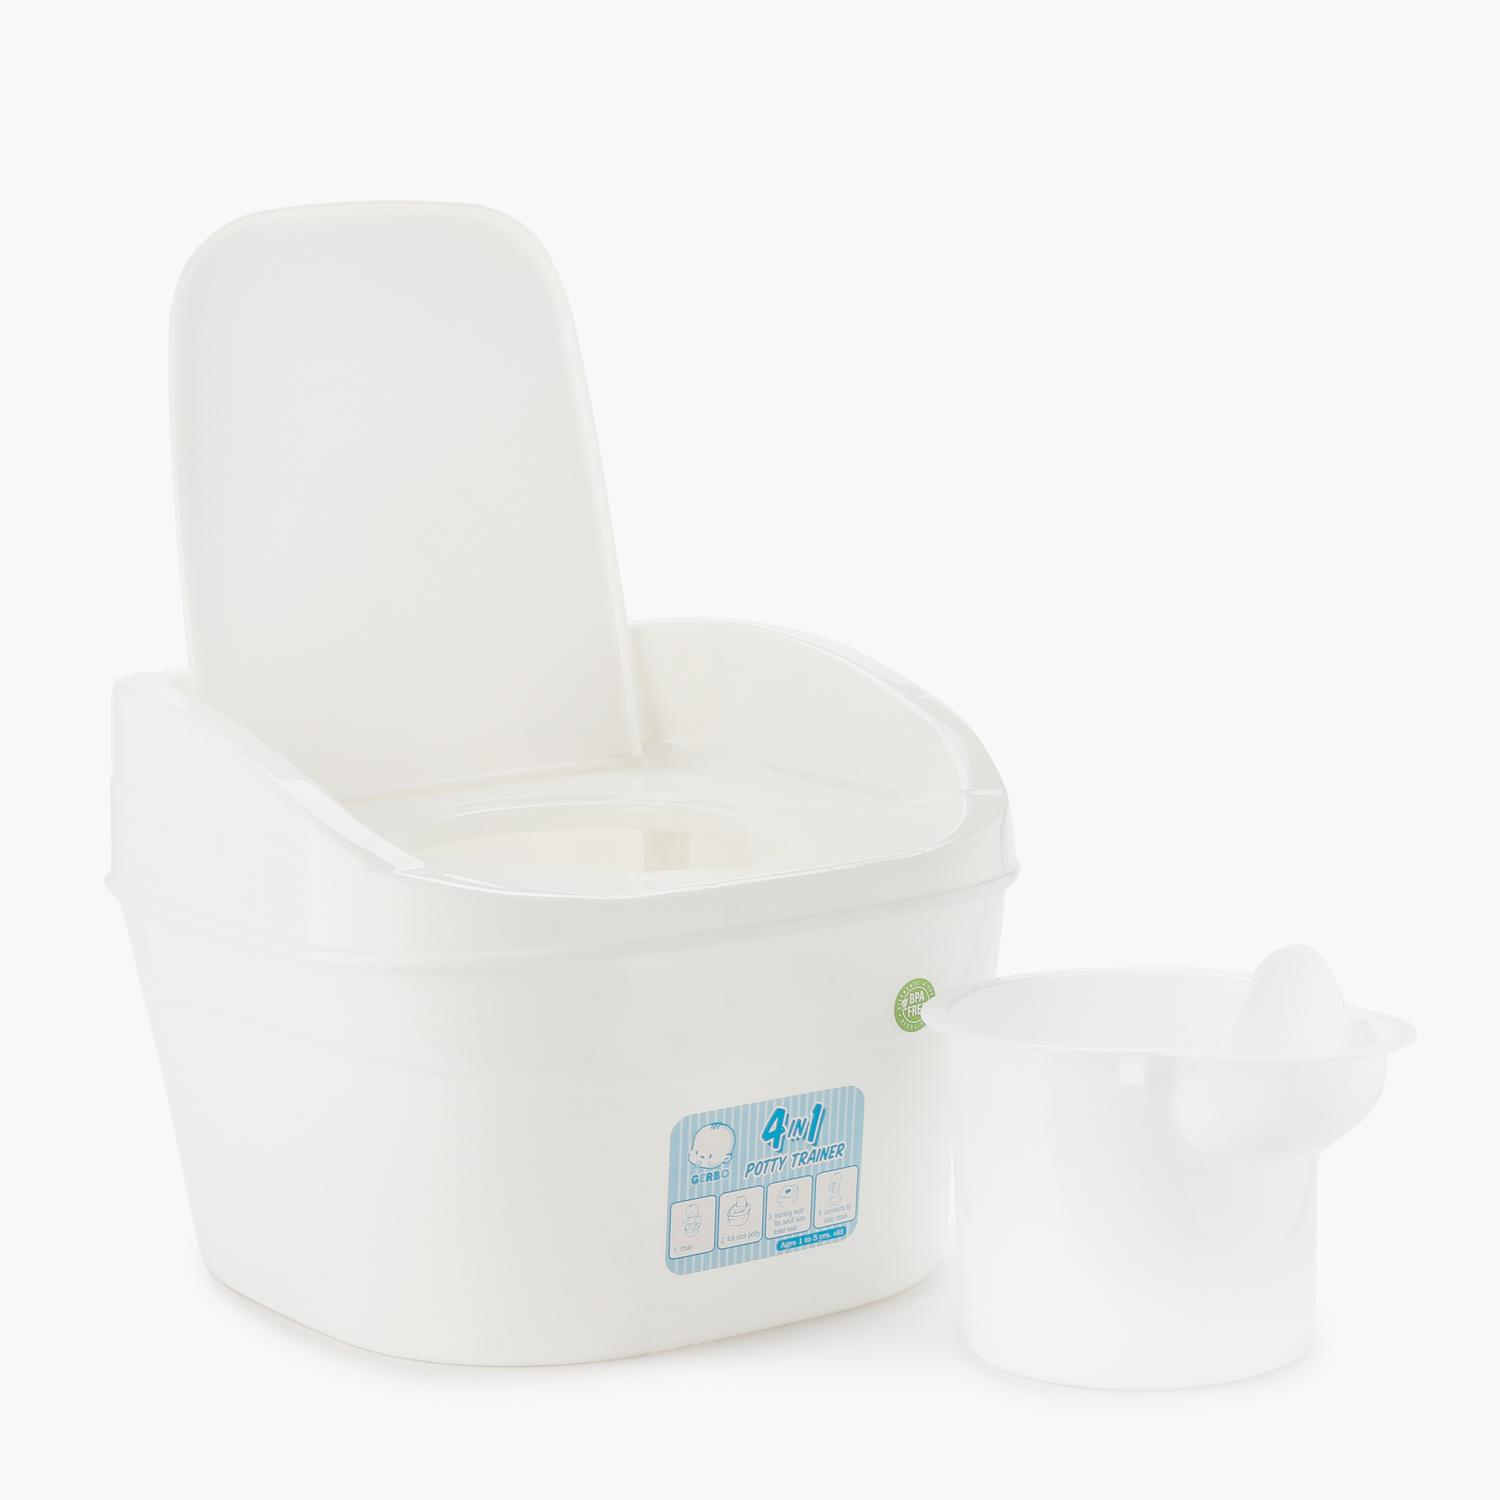 Gerbo 4-in-1 Potty Trainer (White)